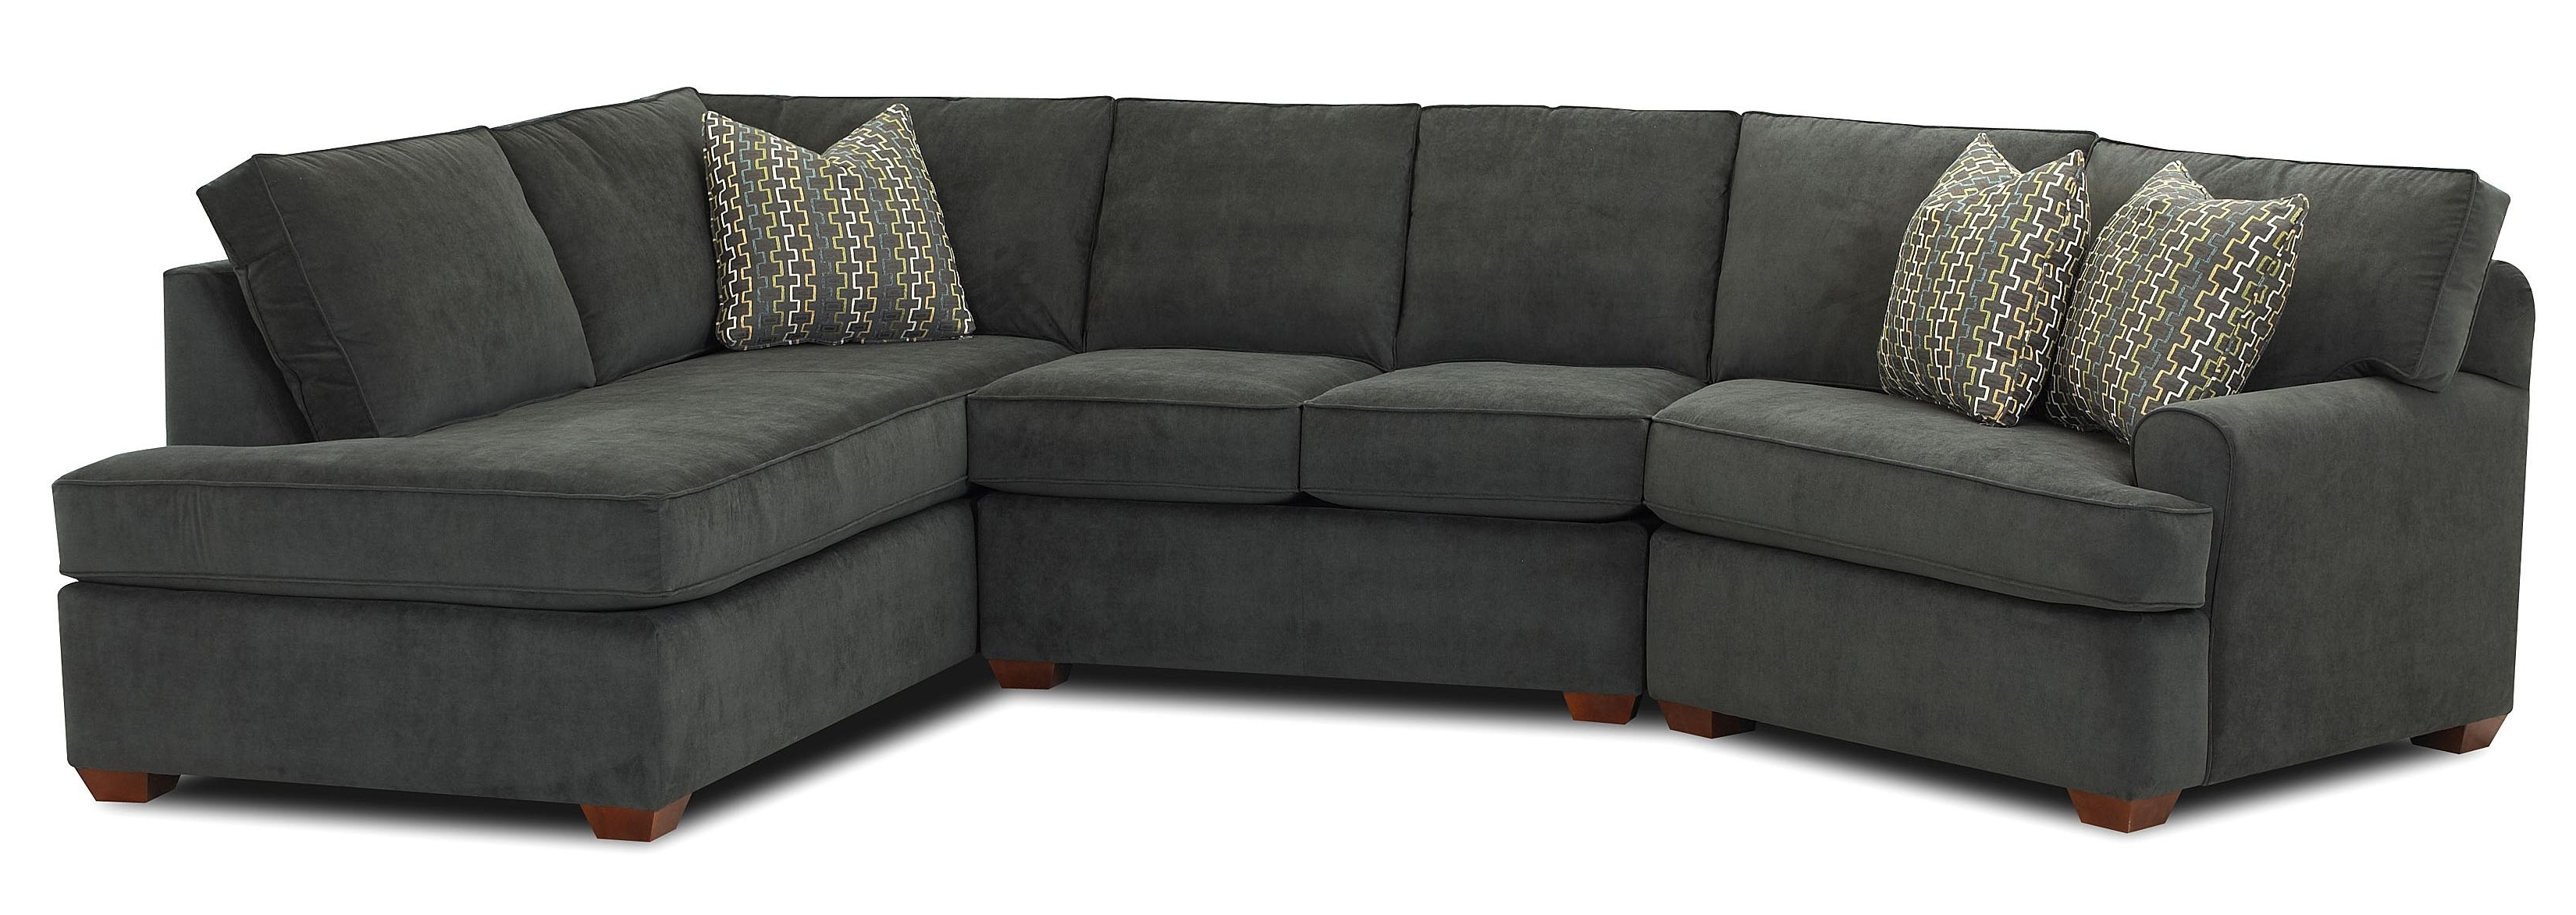 Long Sectional Sofas With Chaise Throughout Well Known Klaussner Hybrid Sectional Sofa With Right Facing Sofa Chaise (View 8 of 20)